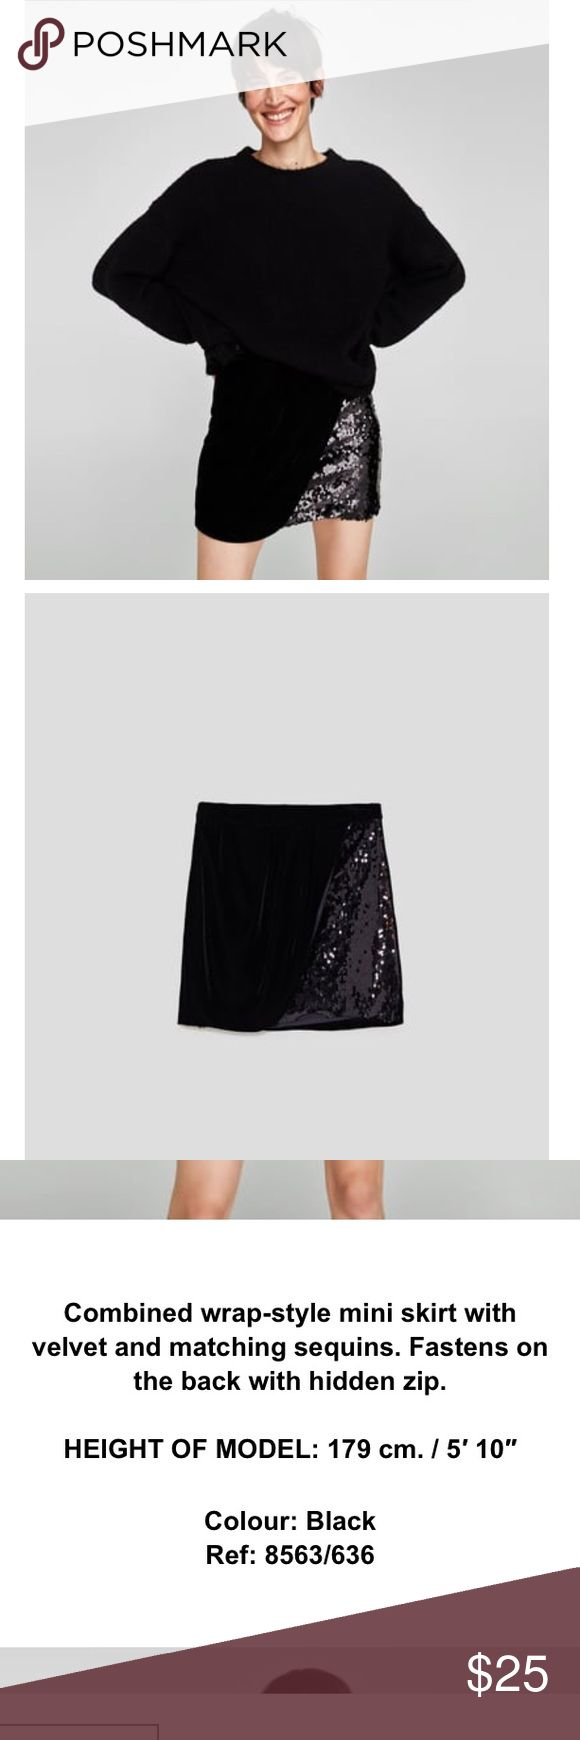 Zara shimmer mini skirt Brand new!!! Zara combined wrap style mini skirt with velvet and matching sequins. Refer to picture for detail. Zara Skirts Mini